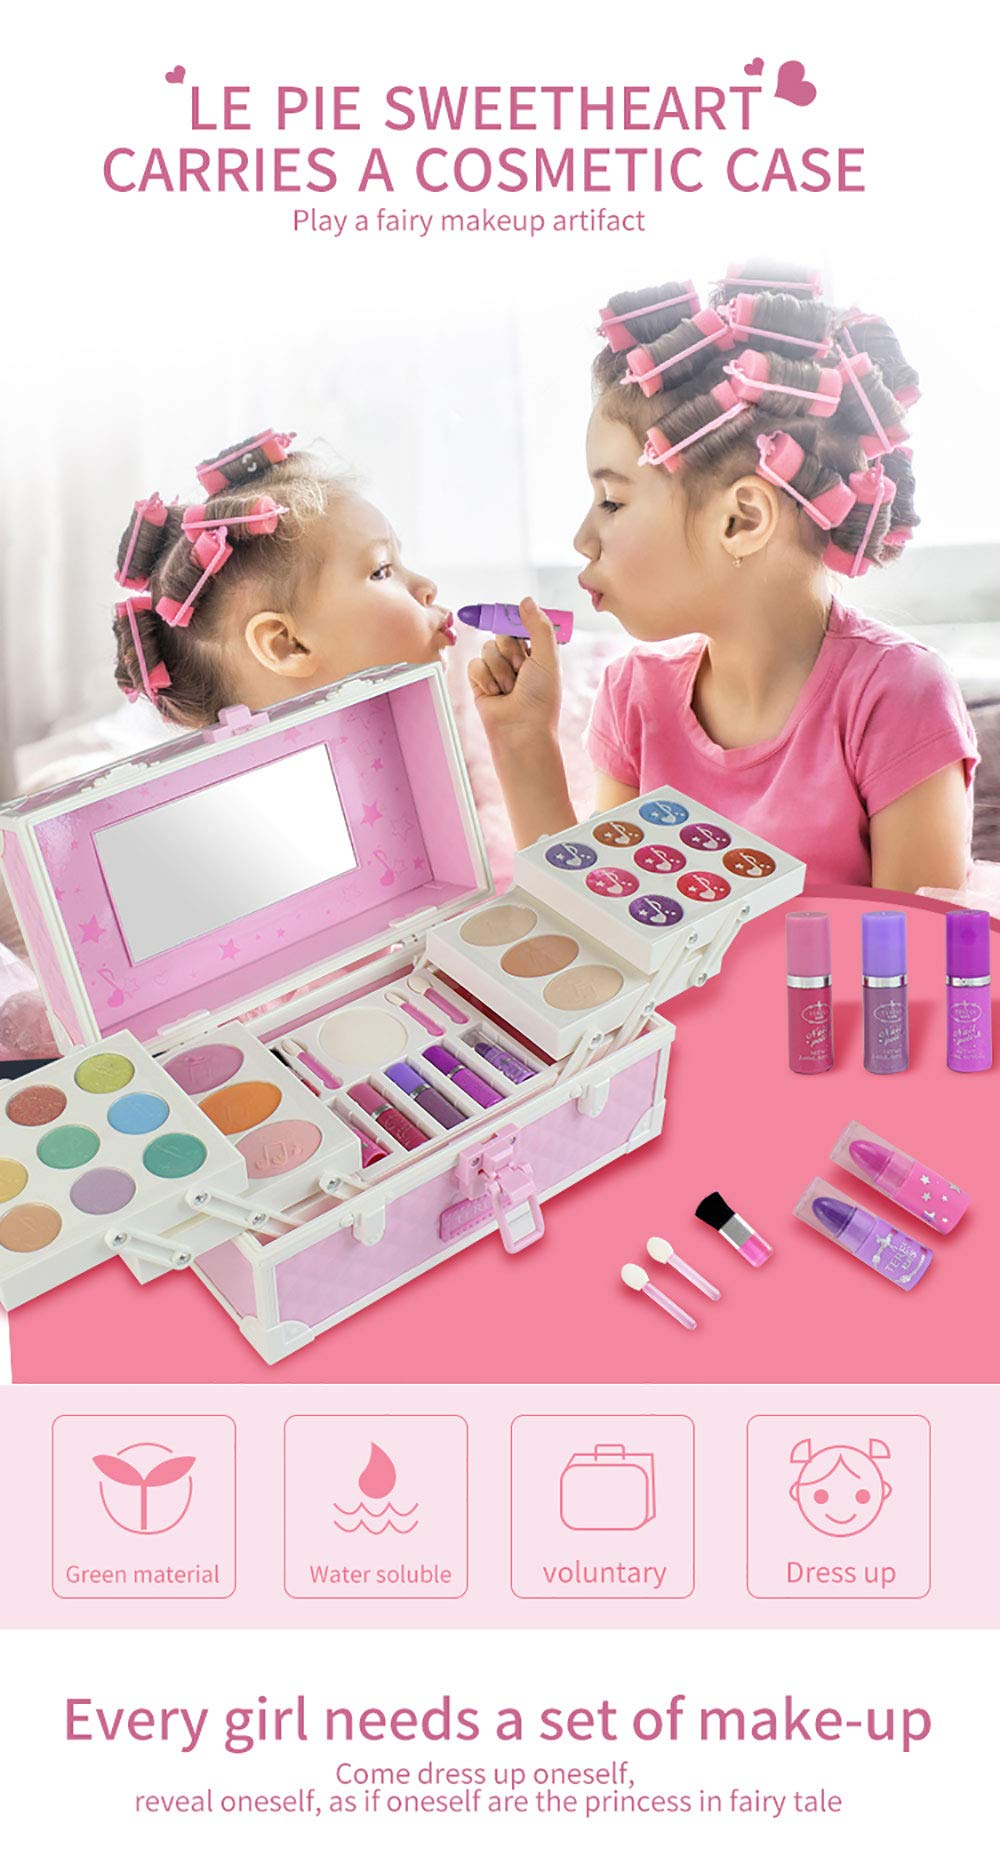 Studyset 22752T Girl Cute Beautiful Cosmetic Case Children Water-Soluble Makeup Cosmetics Pretend Toy